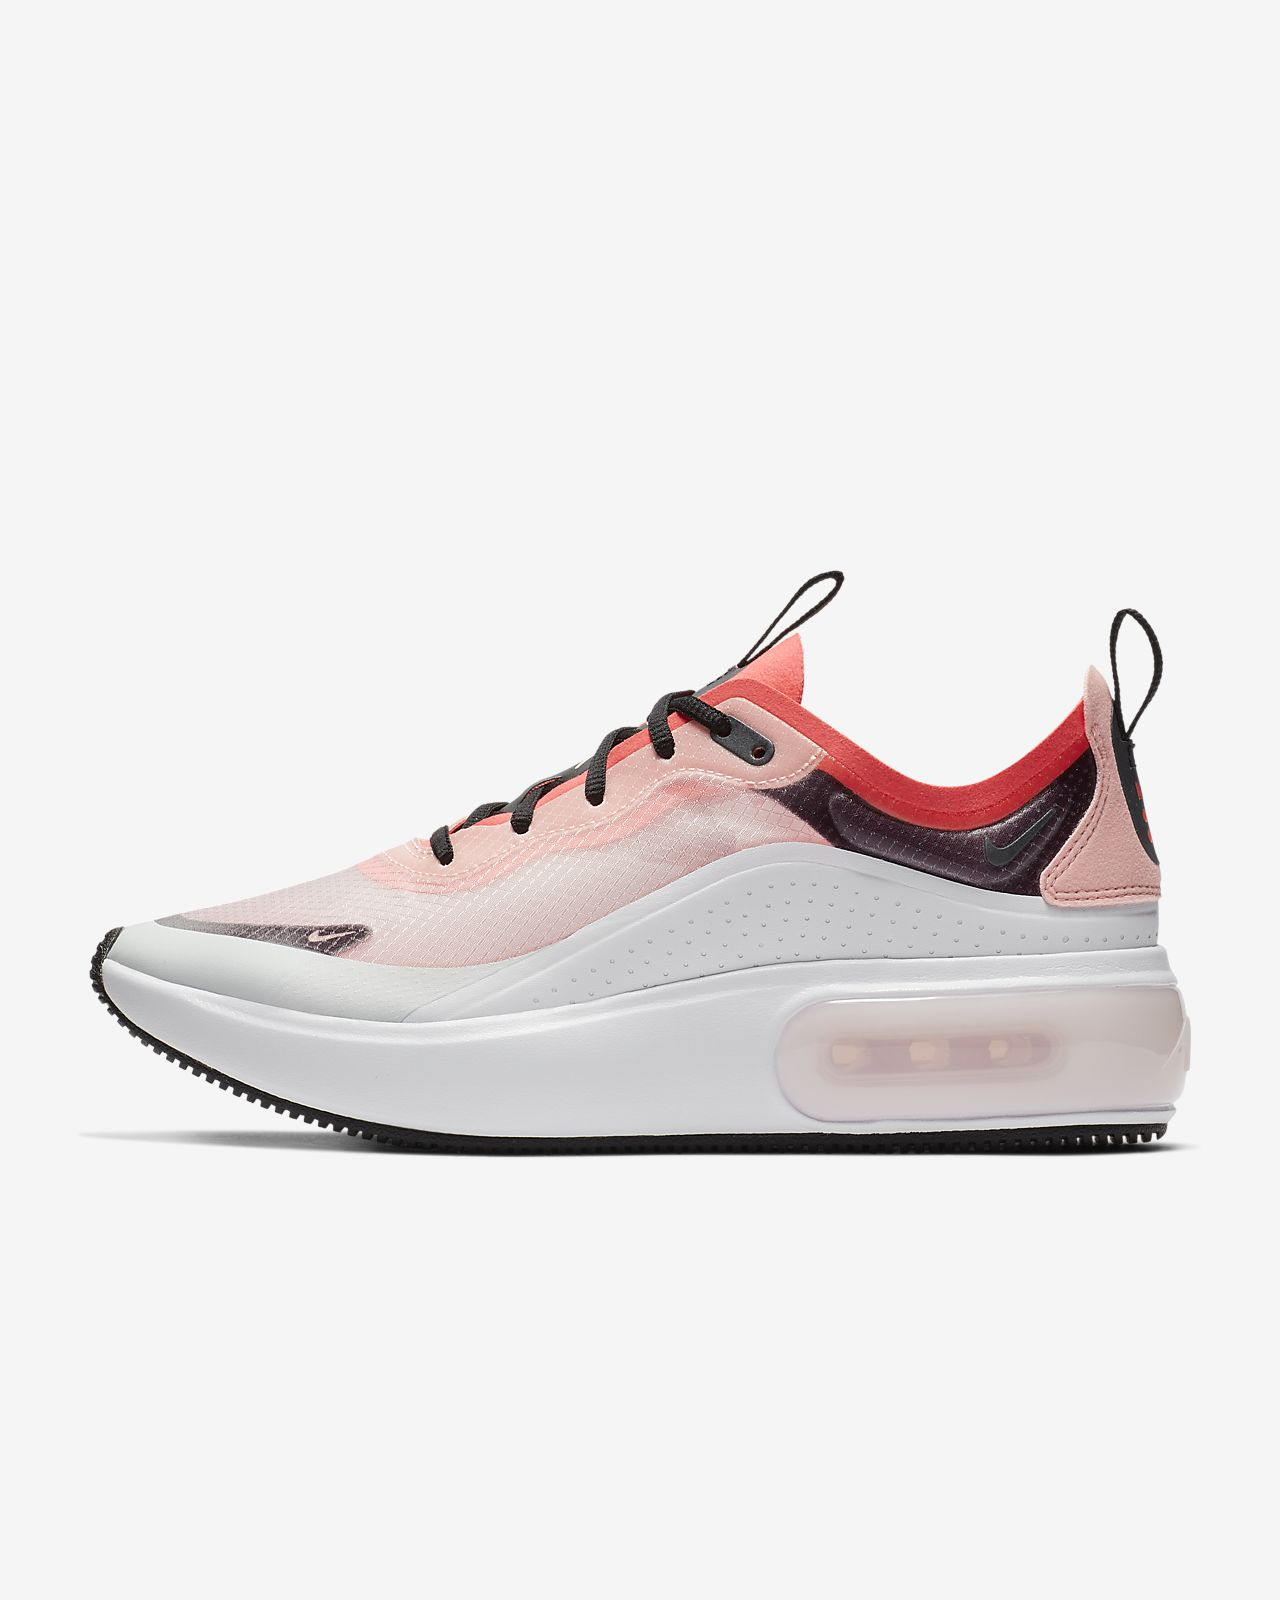 reputable site a2353 ca996 ... Buty damskie Nike Air Max Dia SE QS